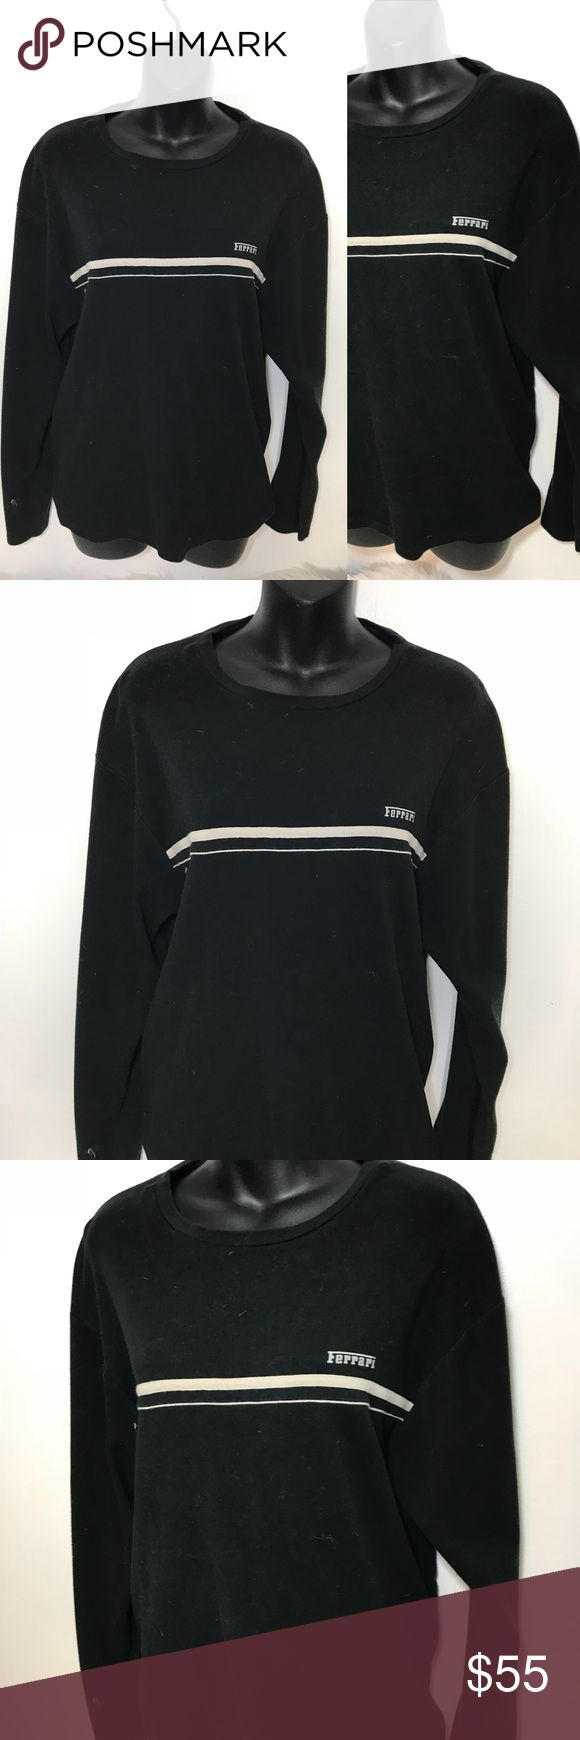 Ferrari Black and White Crew Neck Long Sleeve Great condition no rips or stains. Authentic Ferrari merchandise  -All measurements in inches taken laying flat on a table    -add your items to a bundle so I can make you a discount offer!  -some items prices are firm unless bundled  -no holds  -no trades  -same day or next day shipping Ferrari Shirts Tees - Long Sleeve